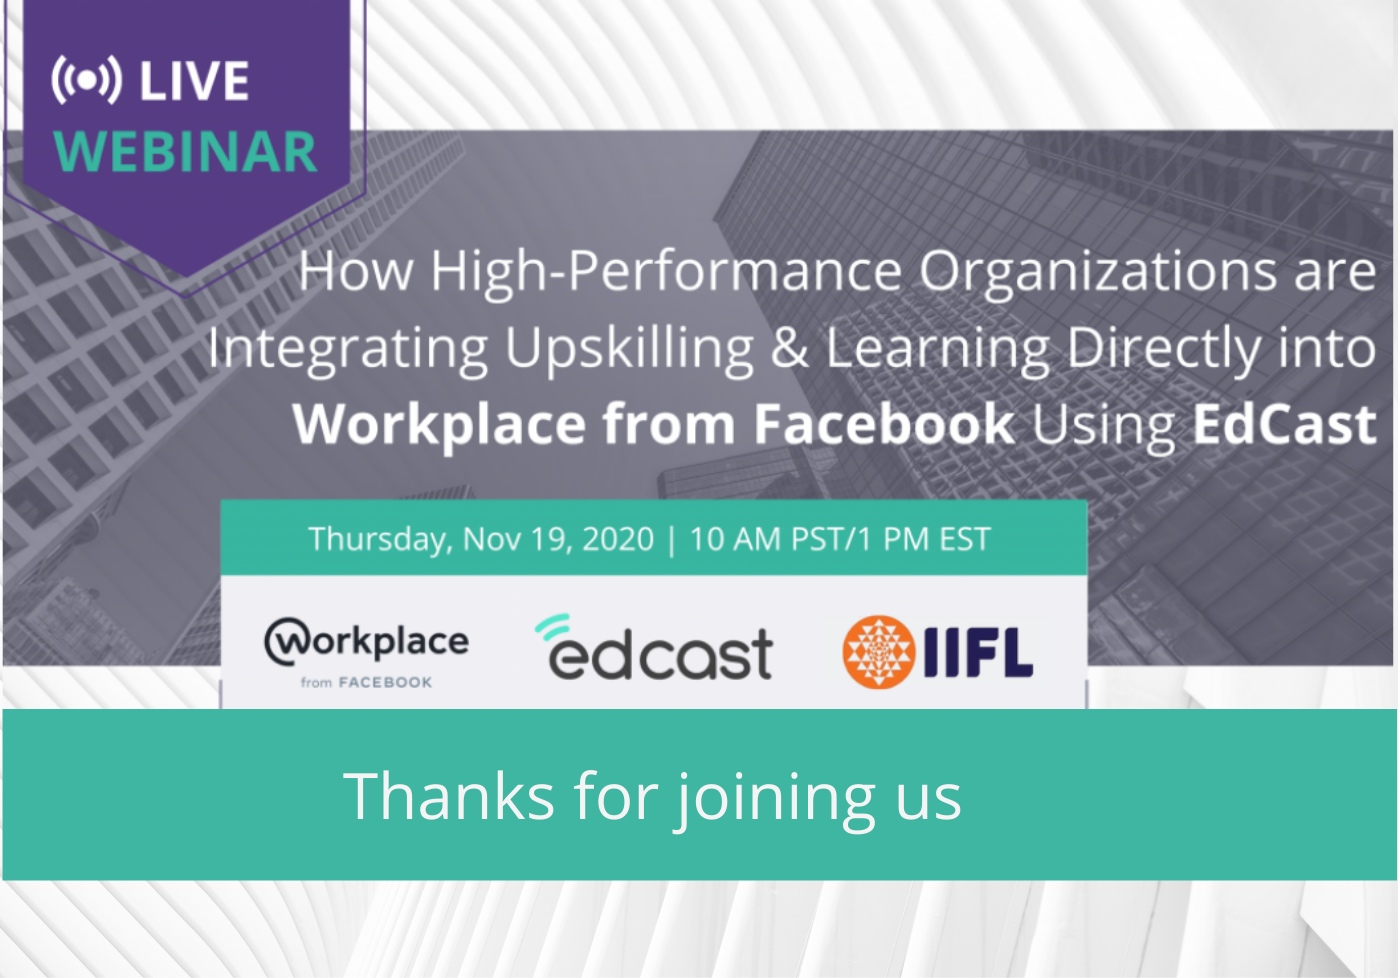 WEBINAR: Integrating Upskilling & Learning Directly into Workplace from Facebook Using EdCast